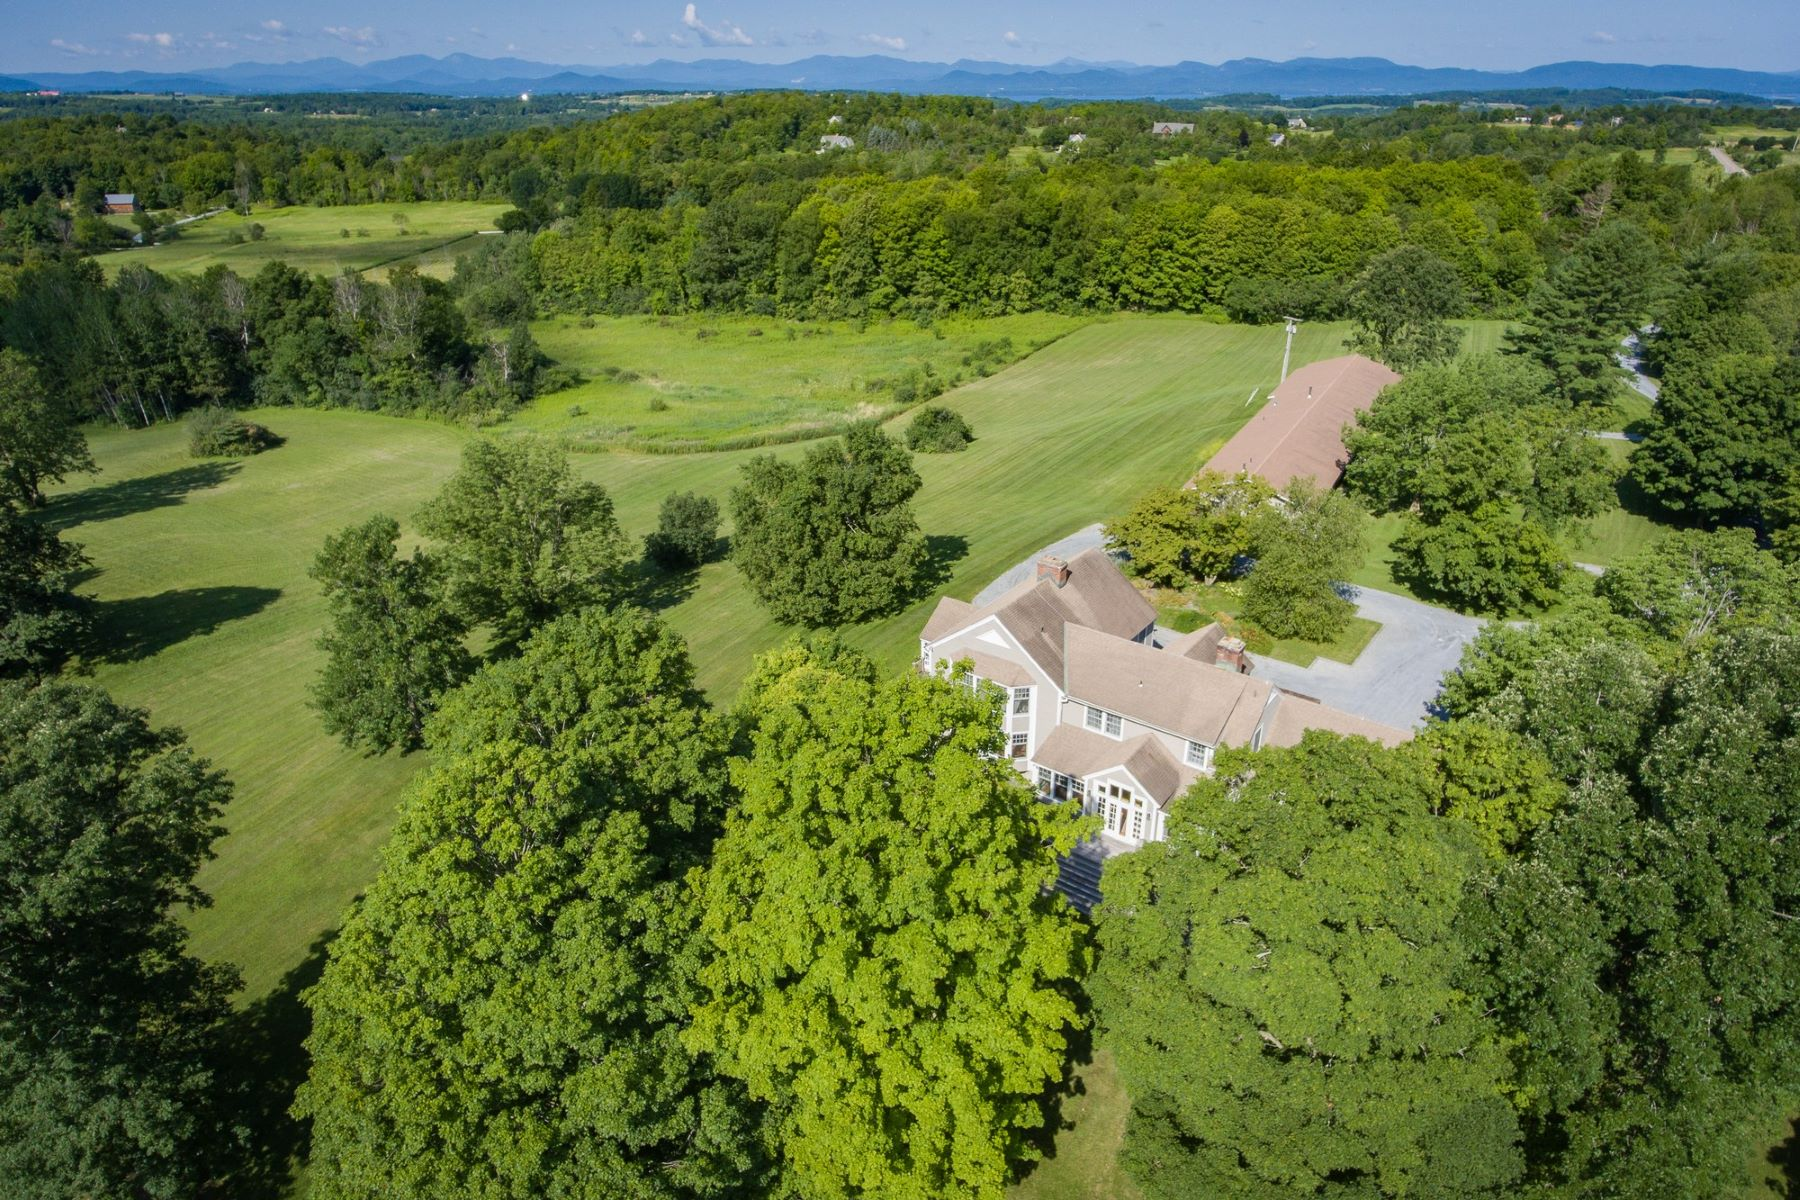 Single Family Homes for Sale at Hidden Irish Hill Estate 1348 Irish Hill Rd Shelburne, Vermont 05482 United States